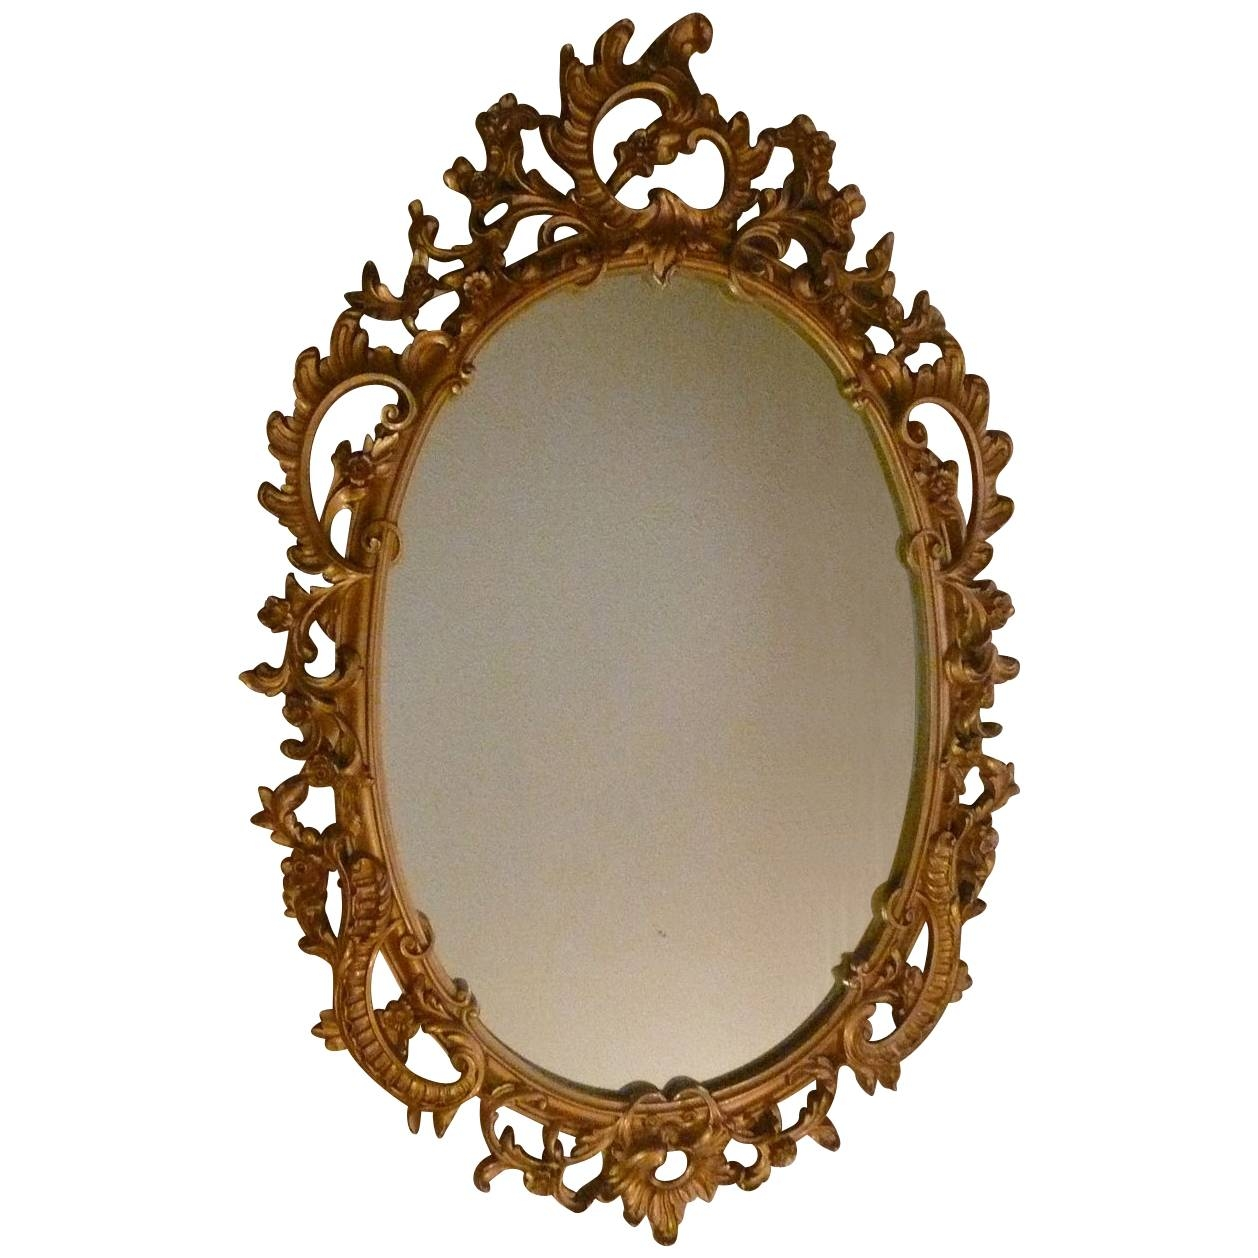 Syroco Wood Composite Mirror With Ornate Scroll From Artgate On in Ornate Mirrors (Image 23 of 25)